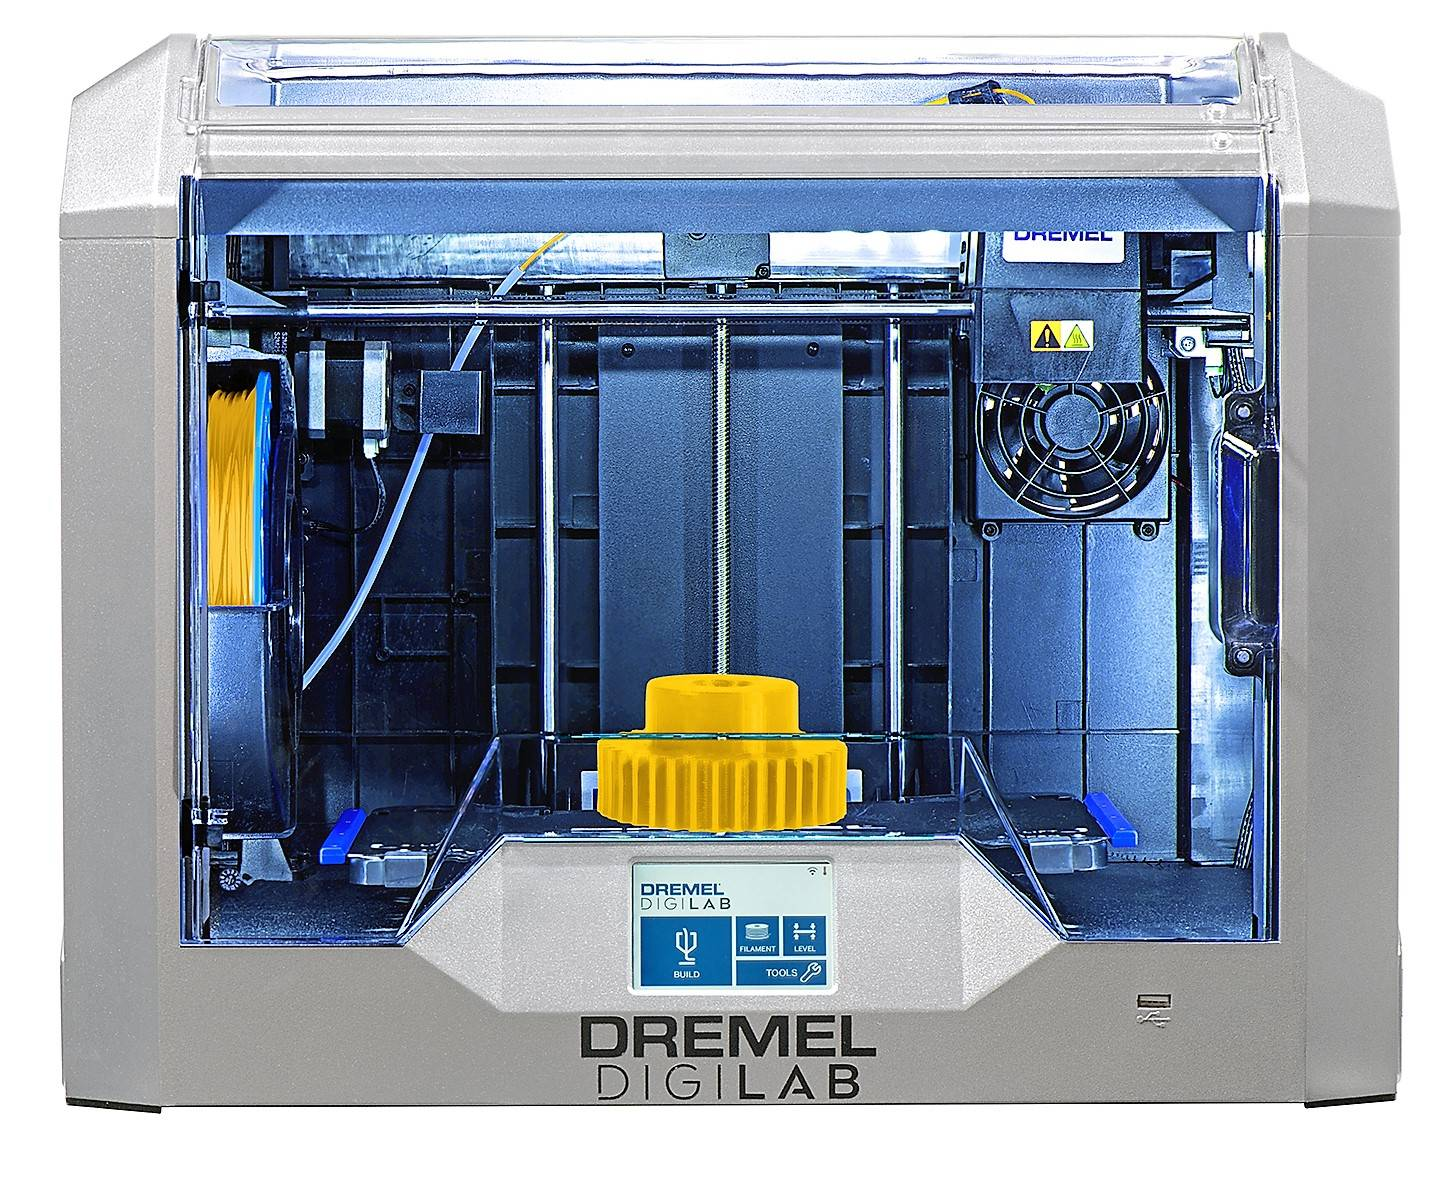 Front image of Dremel Digilab 3D40-FLX 3D printer with yellow gear on bed, printer on and lit up.